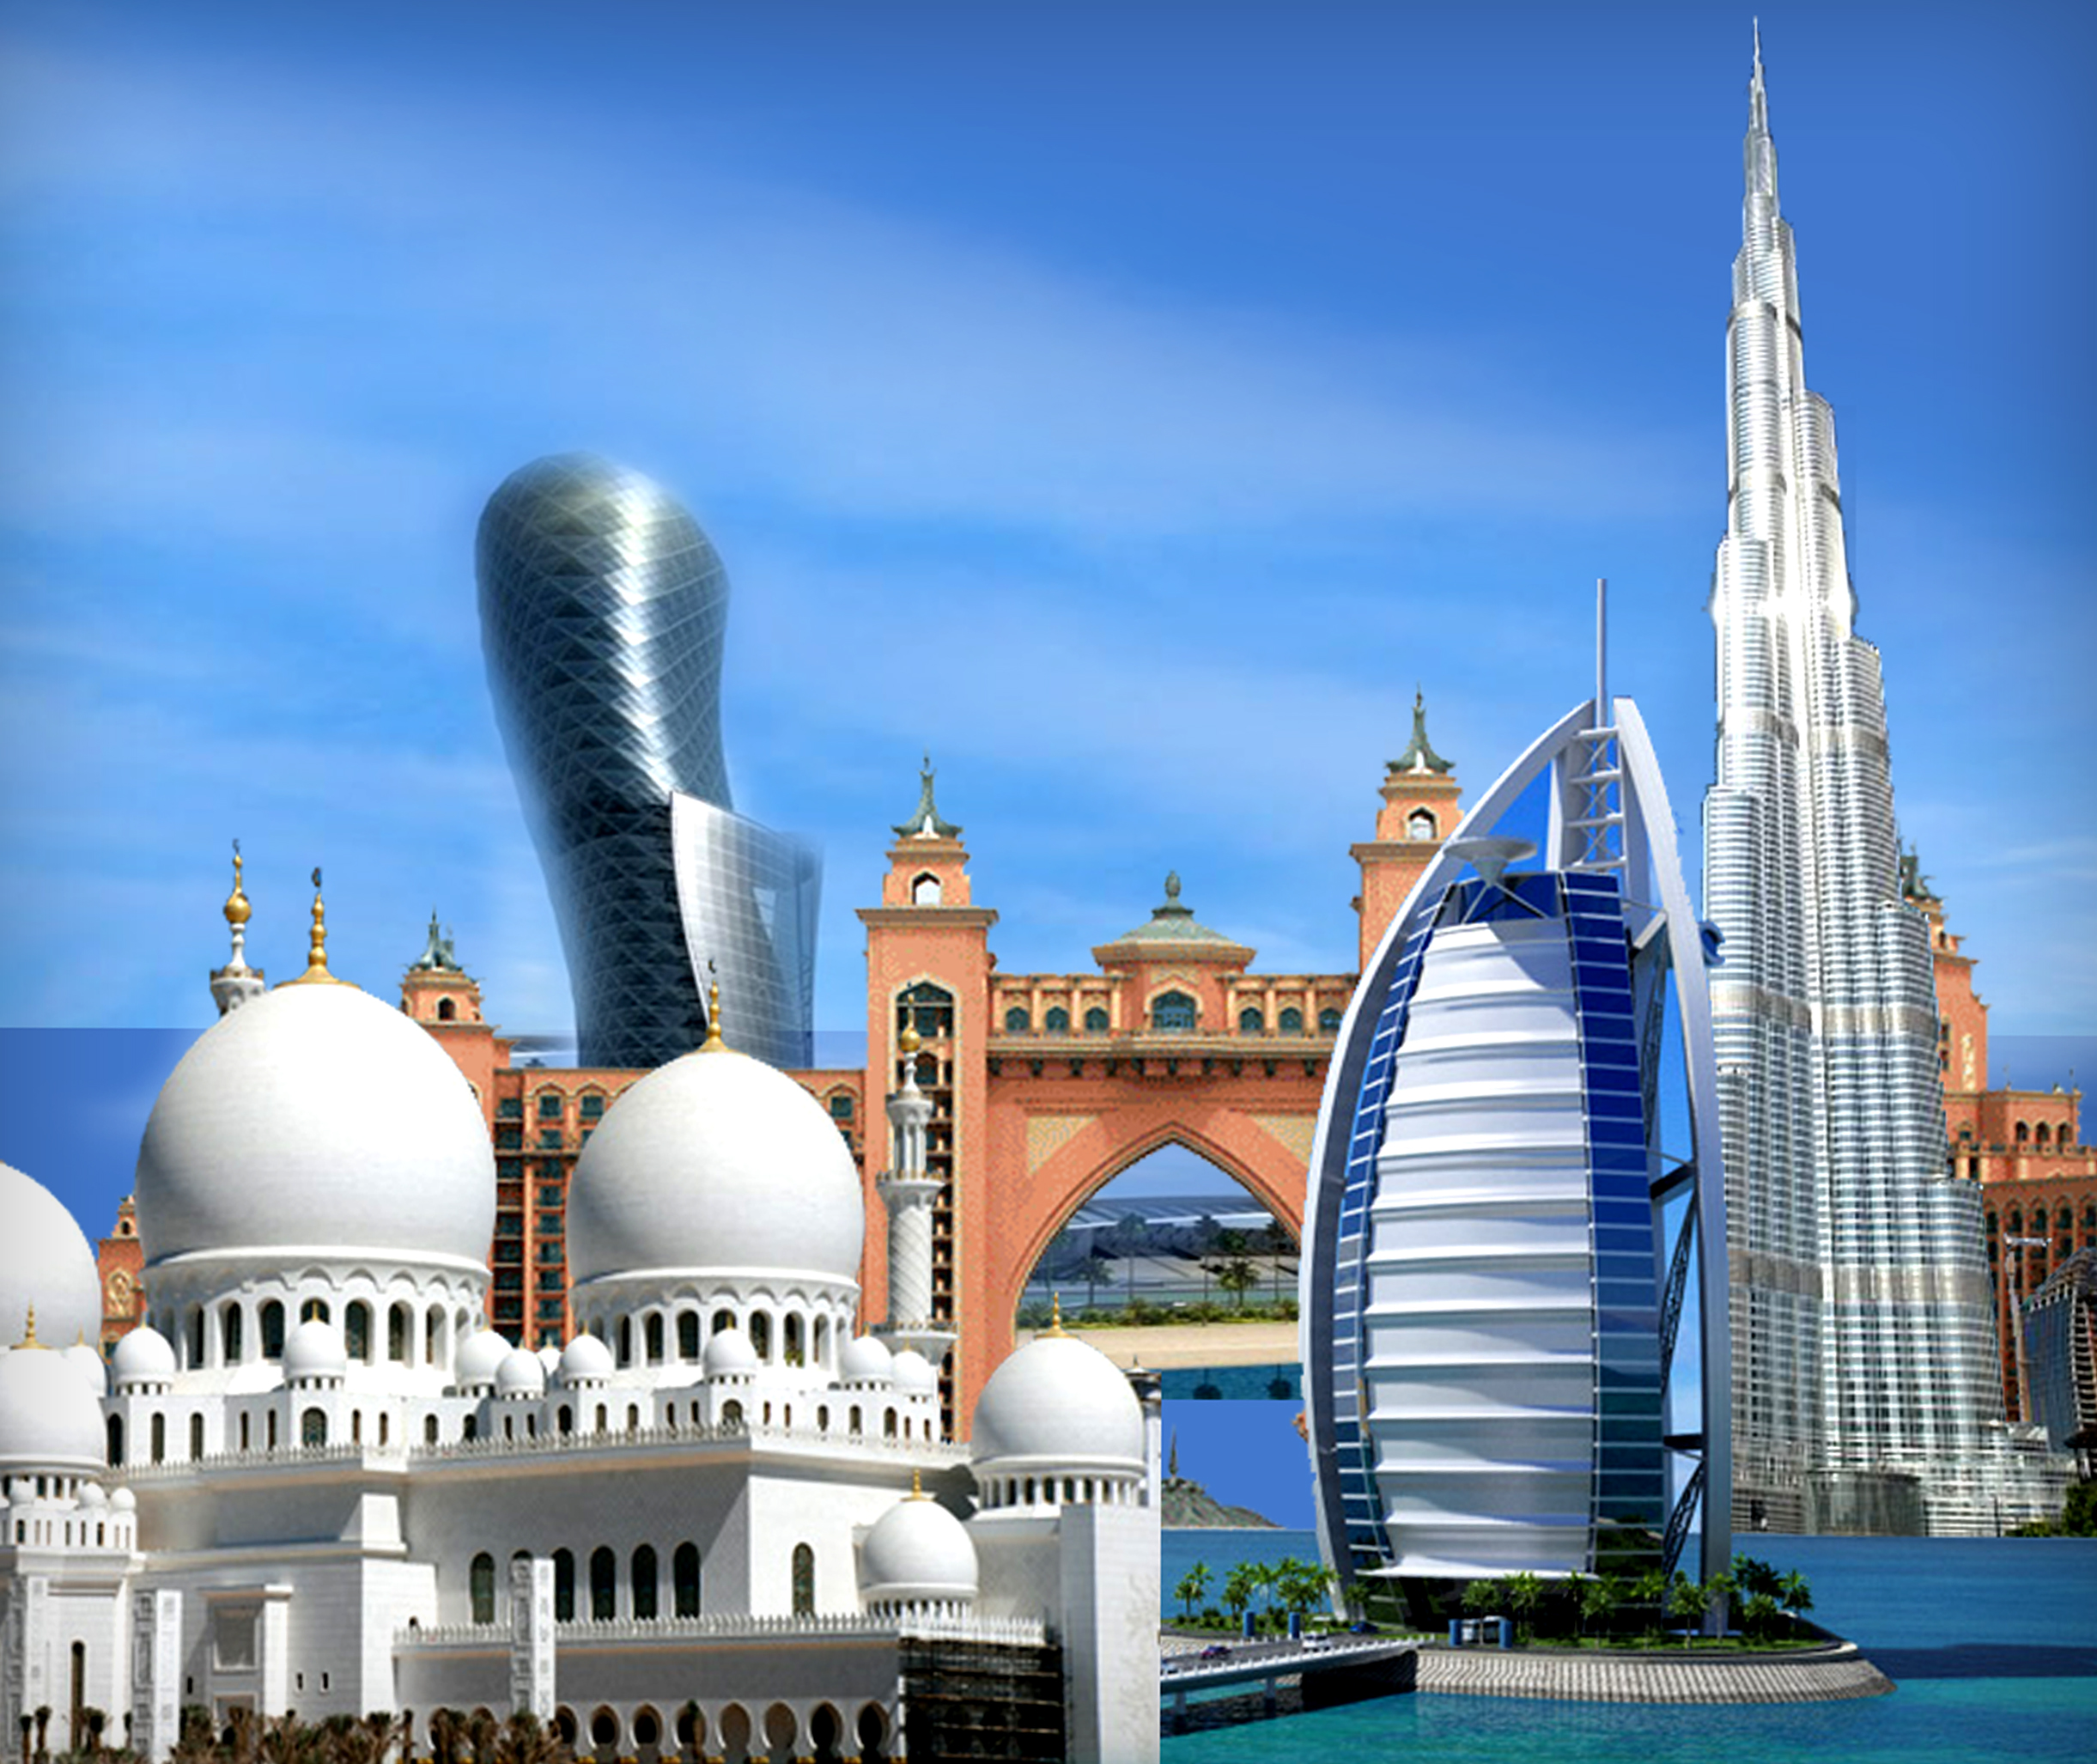 tourism in uae The uae offers a wide variety of experiences for tourists from dramatic scenery and amazing wildlife to some of the best shopping in the world filmed by fqc media fz llc for the uae national.